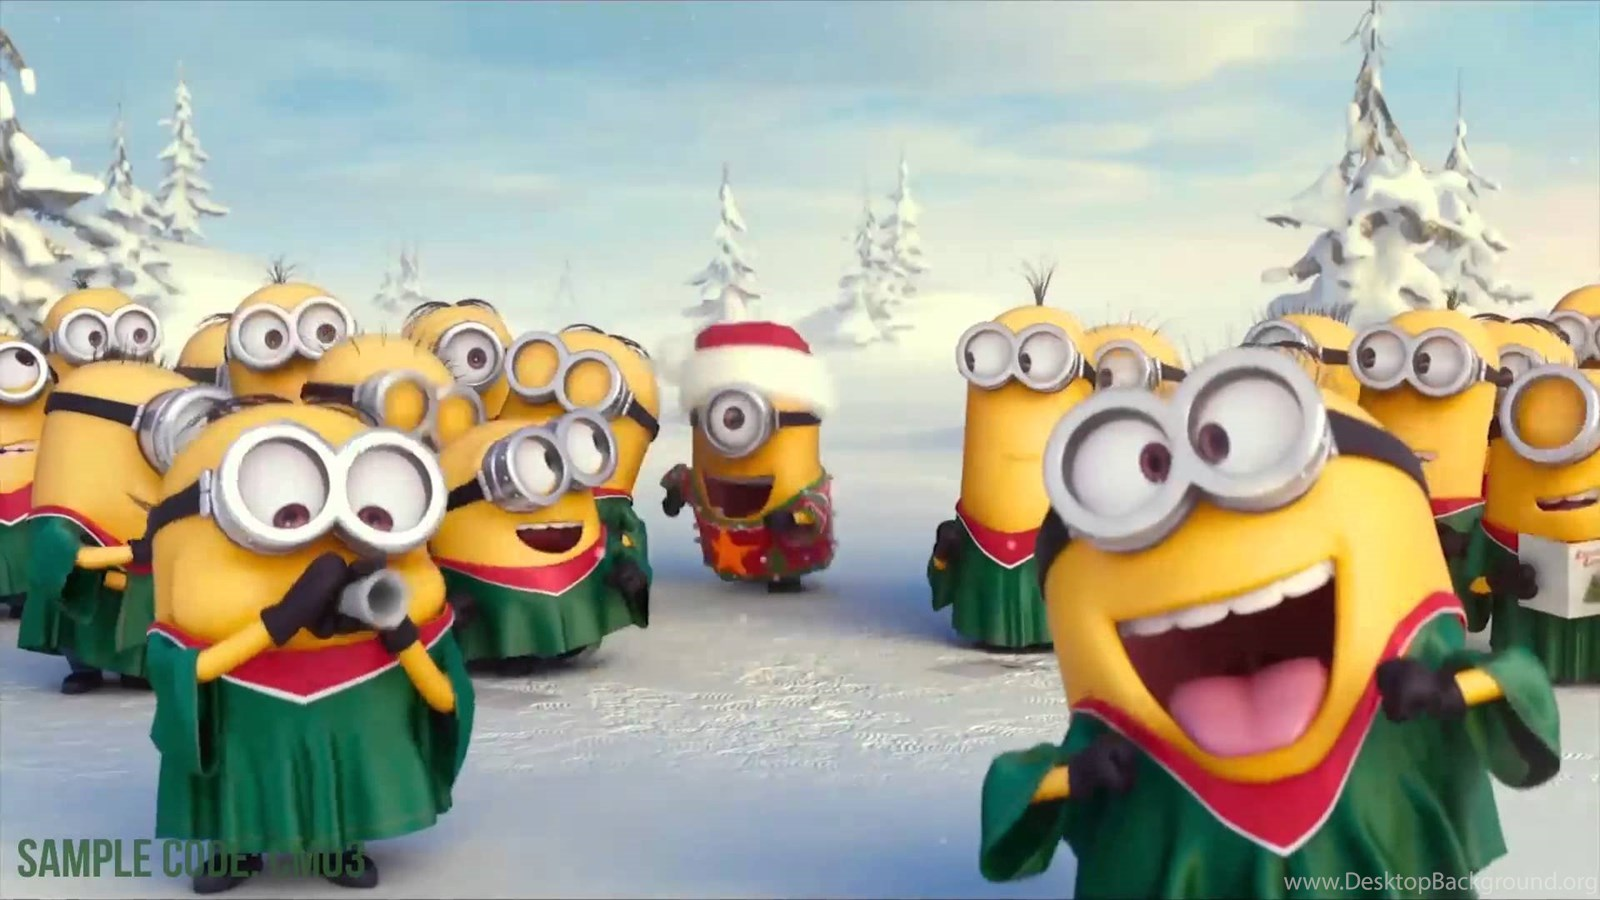 Funny Minion Merry Christmas Wallpapers Sayings: Minions Wishing Merry Christmas With Your Logo ! Make Your